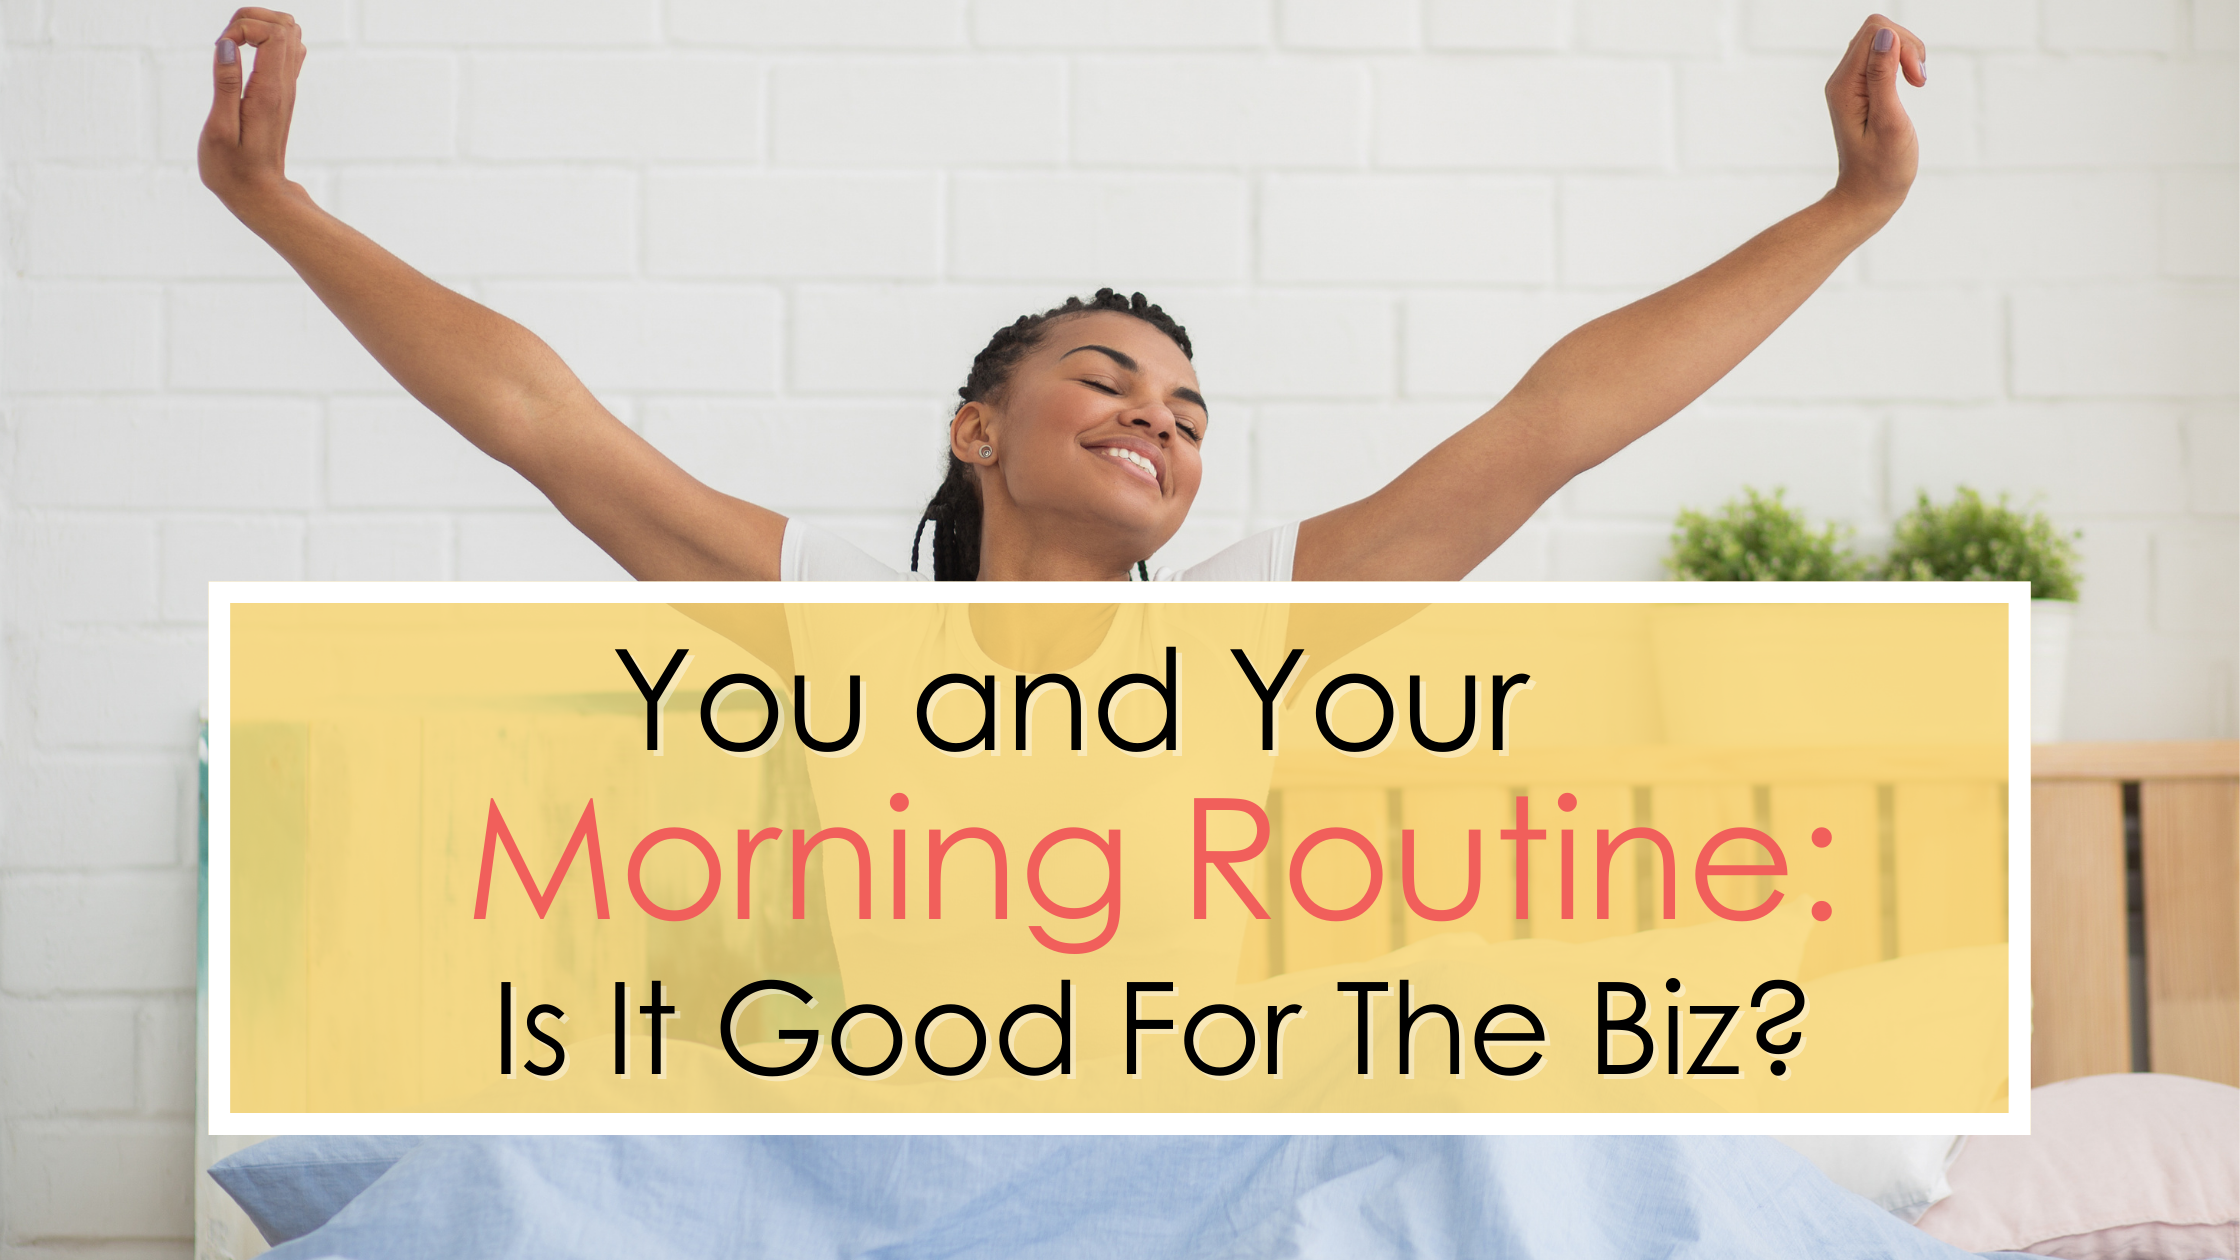 You and Your Morning Routine: Is It Good For The Biz?